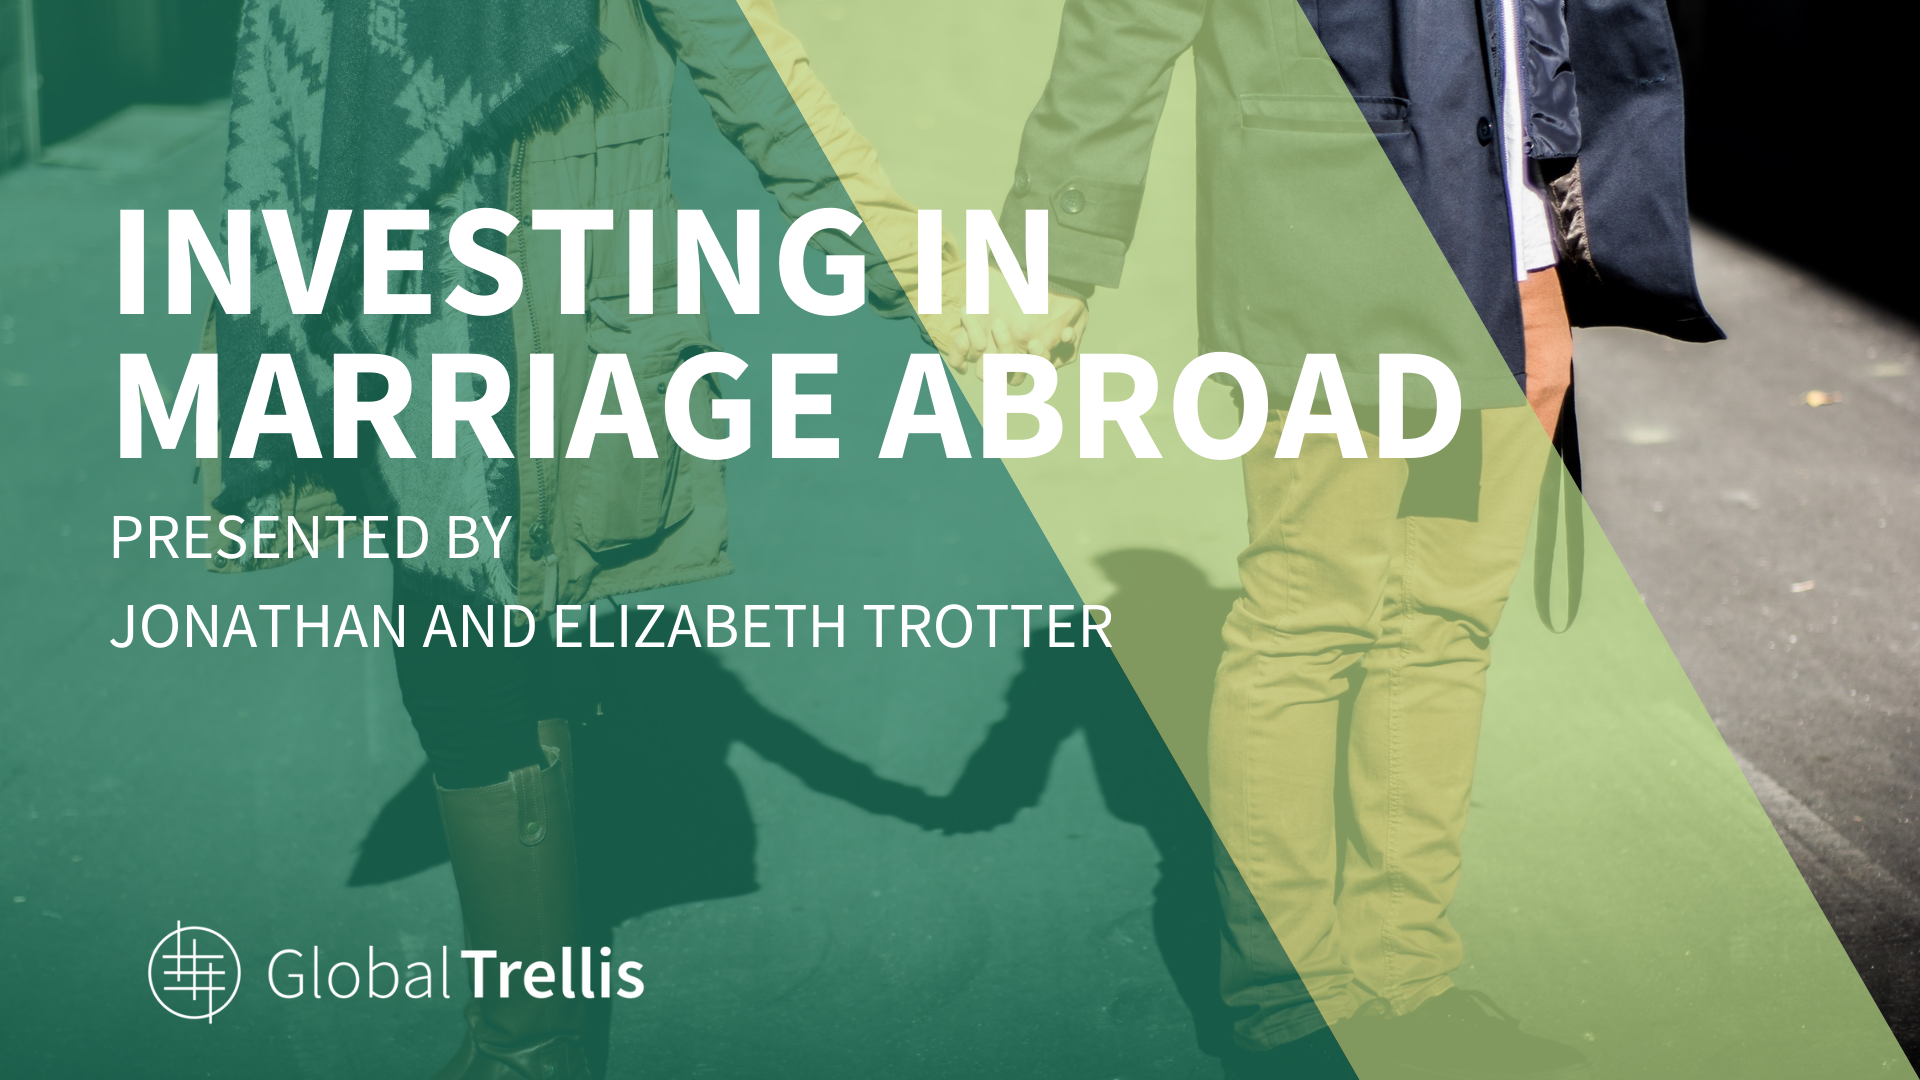 Investing in Marriage Abroad